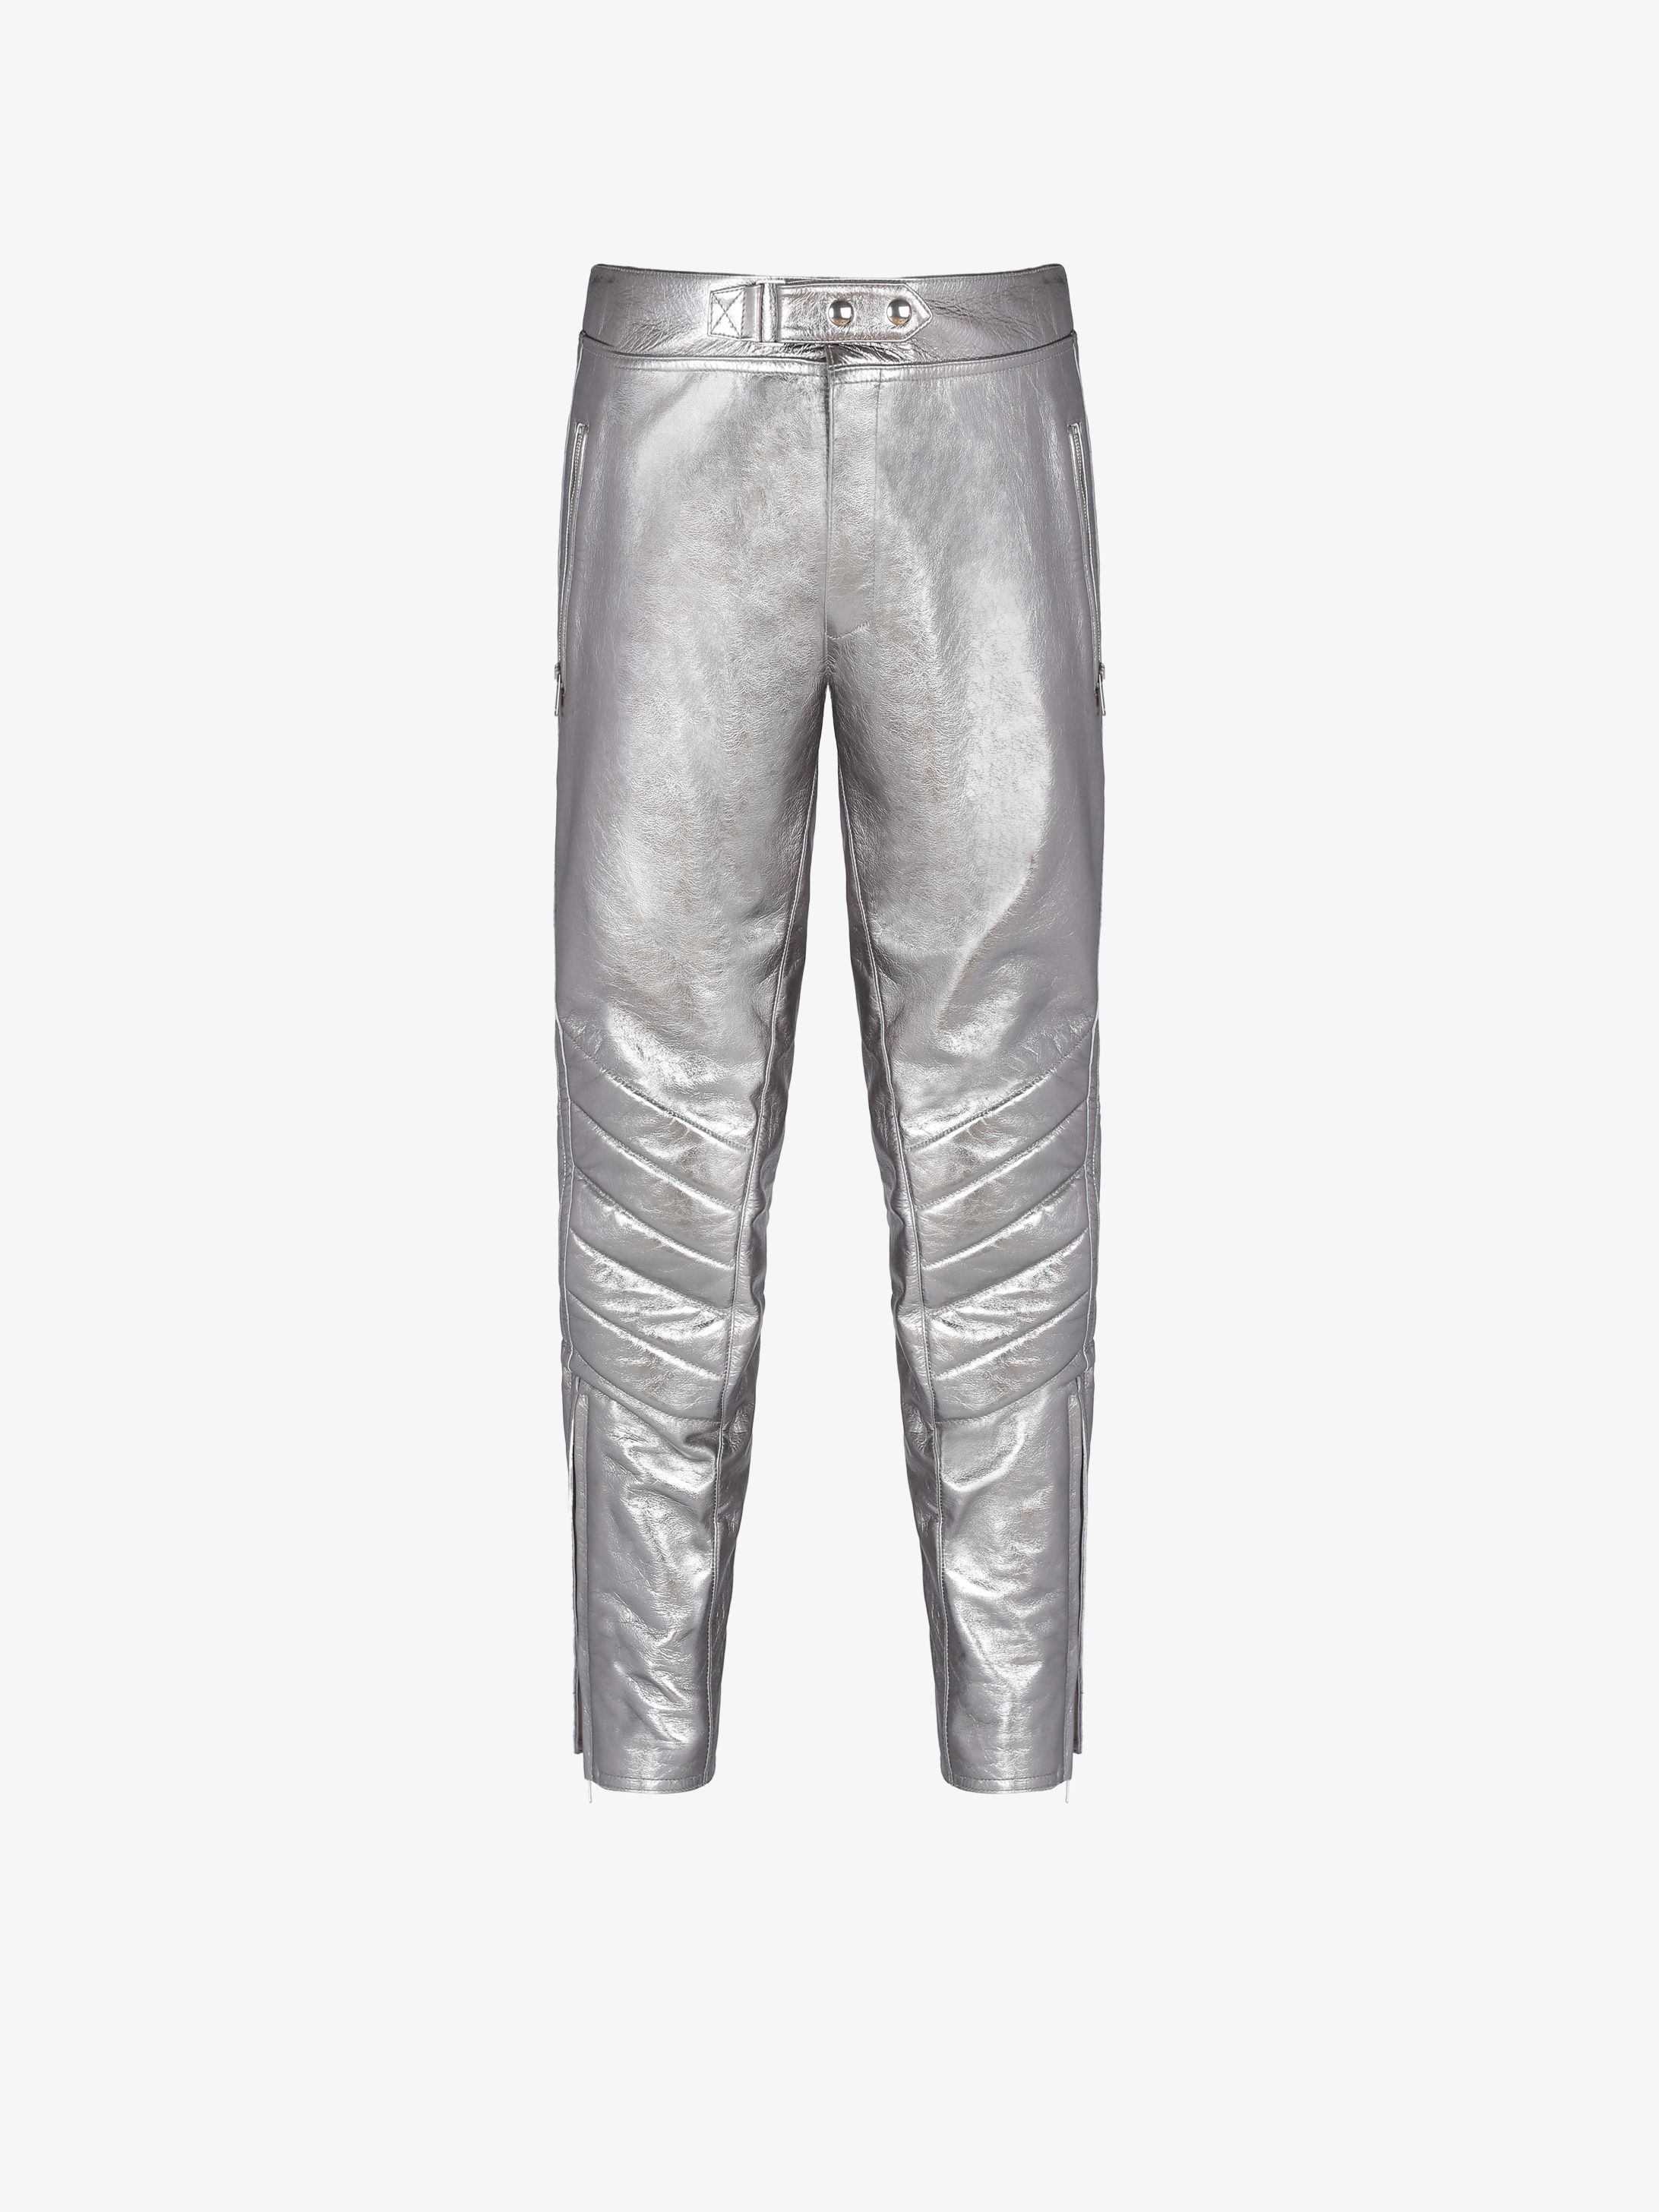 Biker pants in metallized leather